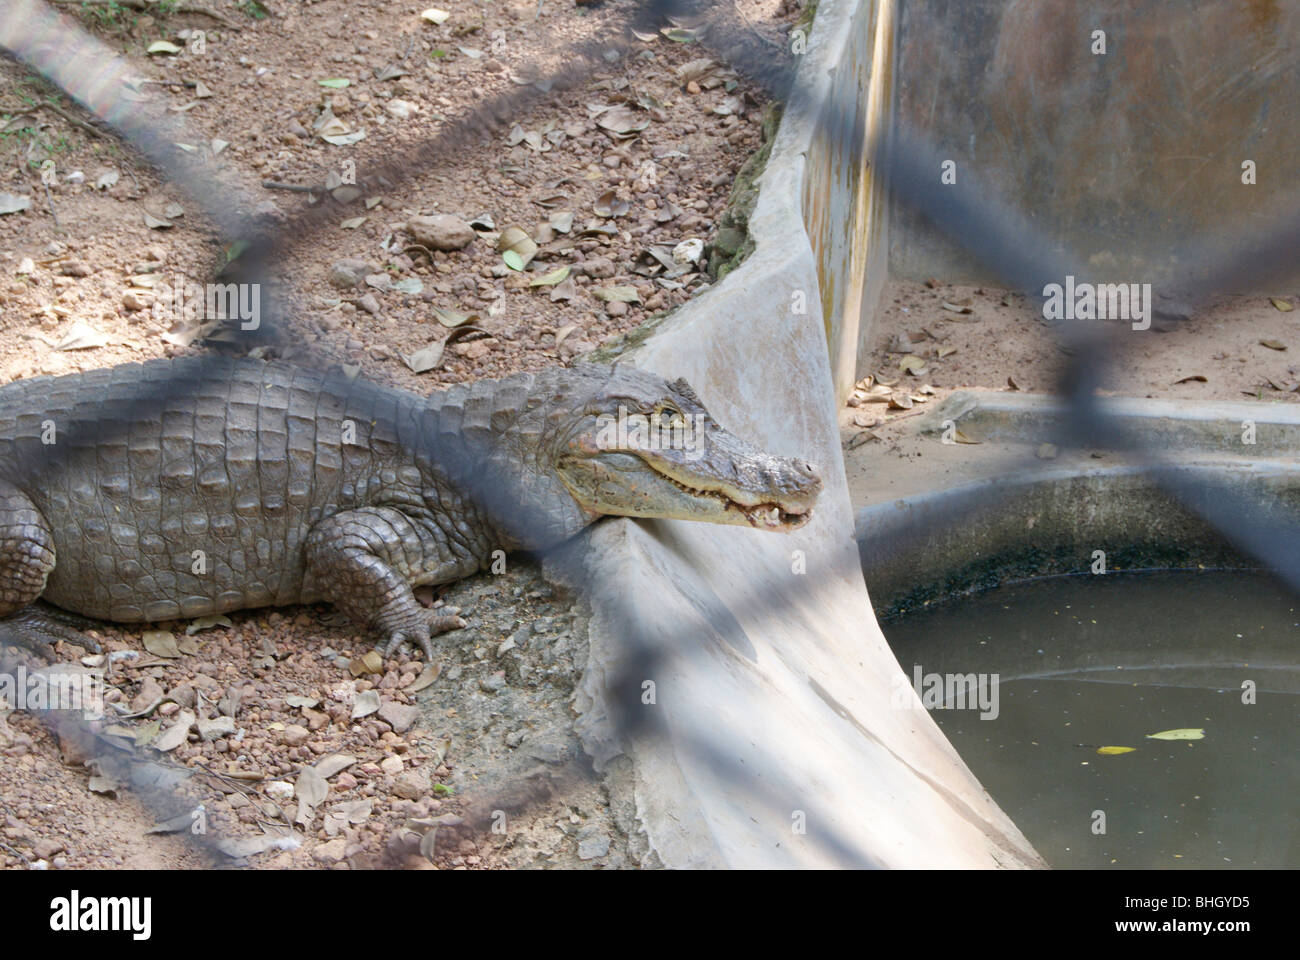 Crocodile Taking Rest in Side of Artificial concrete Water Tank at Trivandrum Zoo at kerala,India - Stock Image